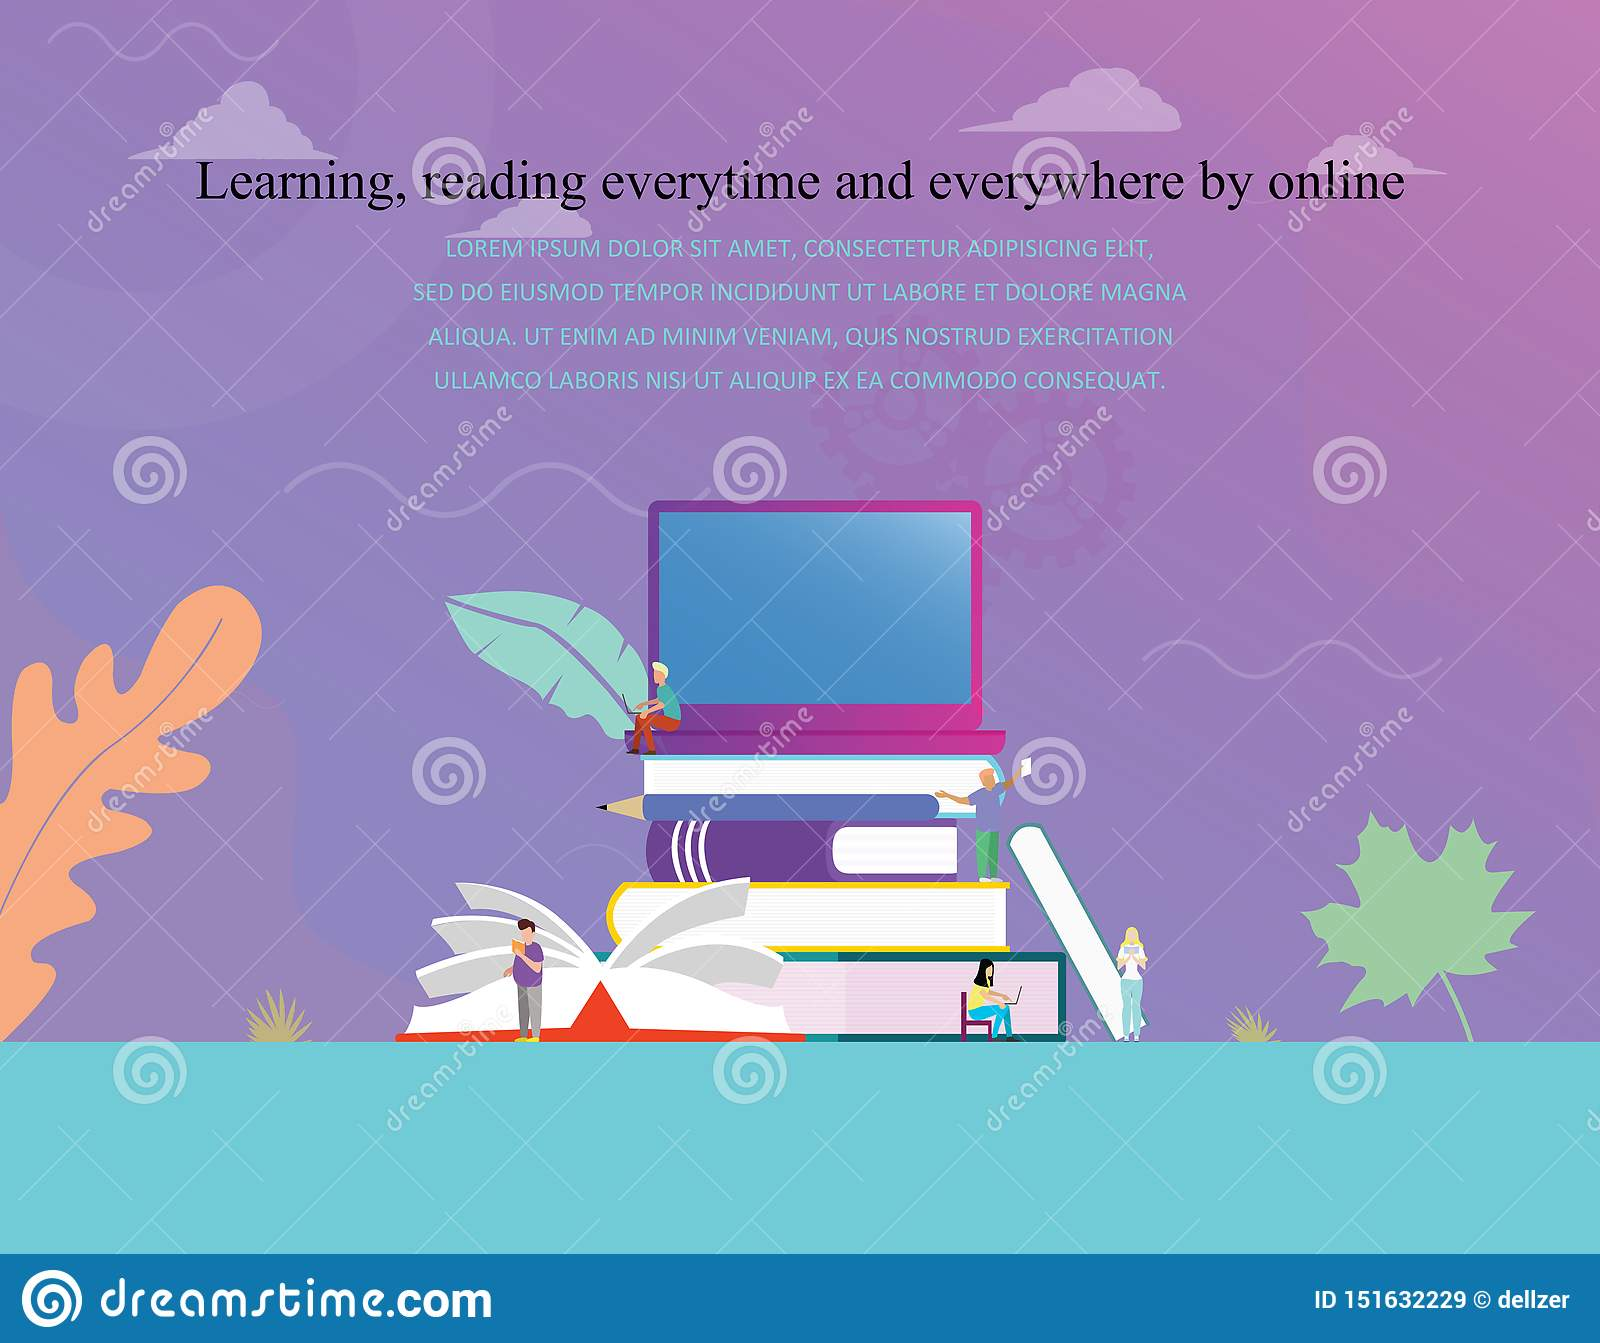 Online education or ebook reading concept vector illustration concept digital library, learning